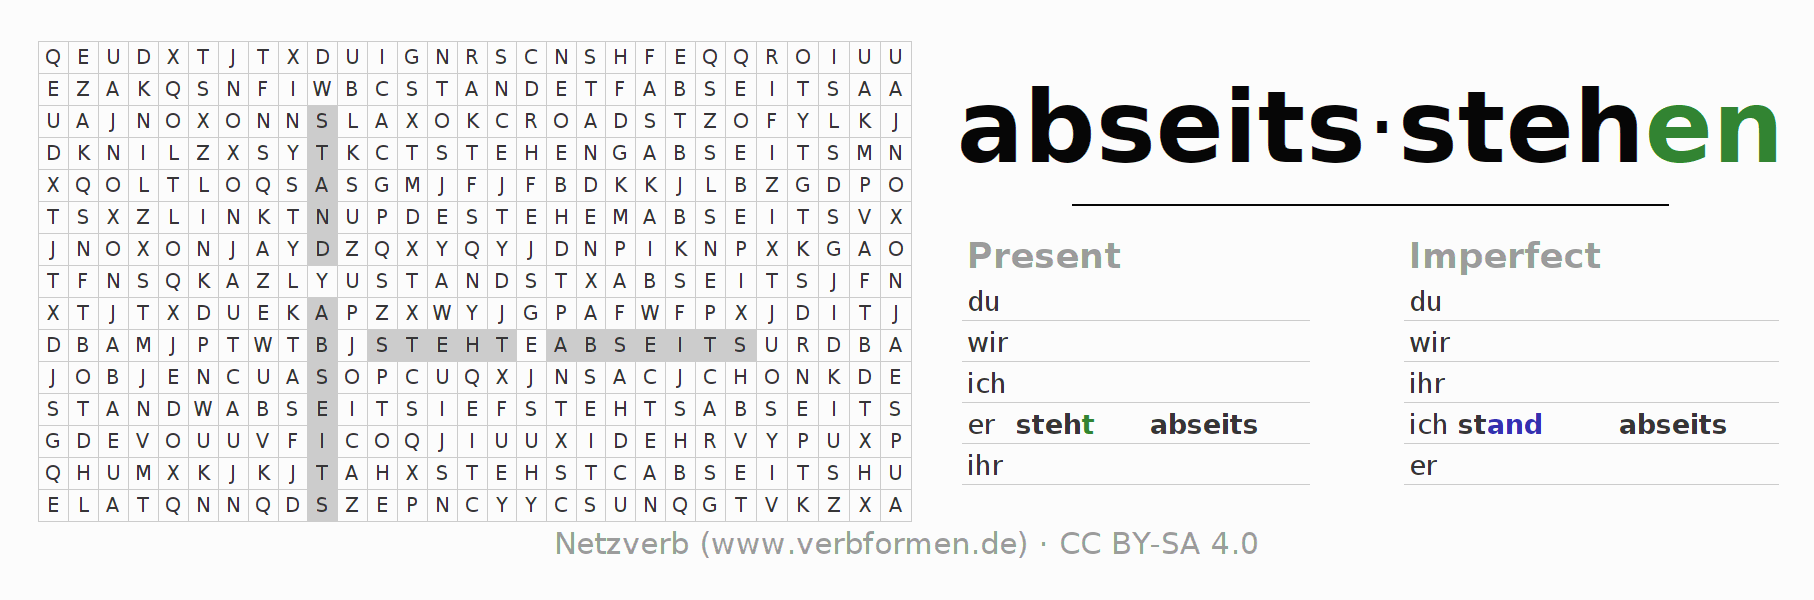 Word search puzzle for the conjugation of the verb abseitsstehen (hat)